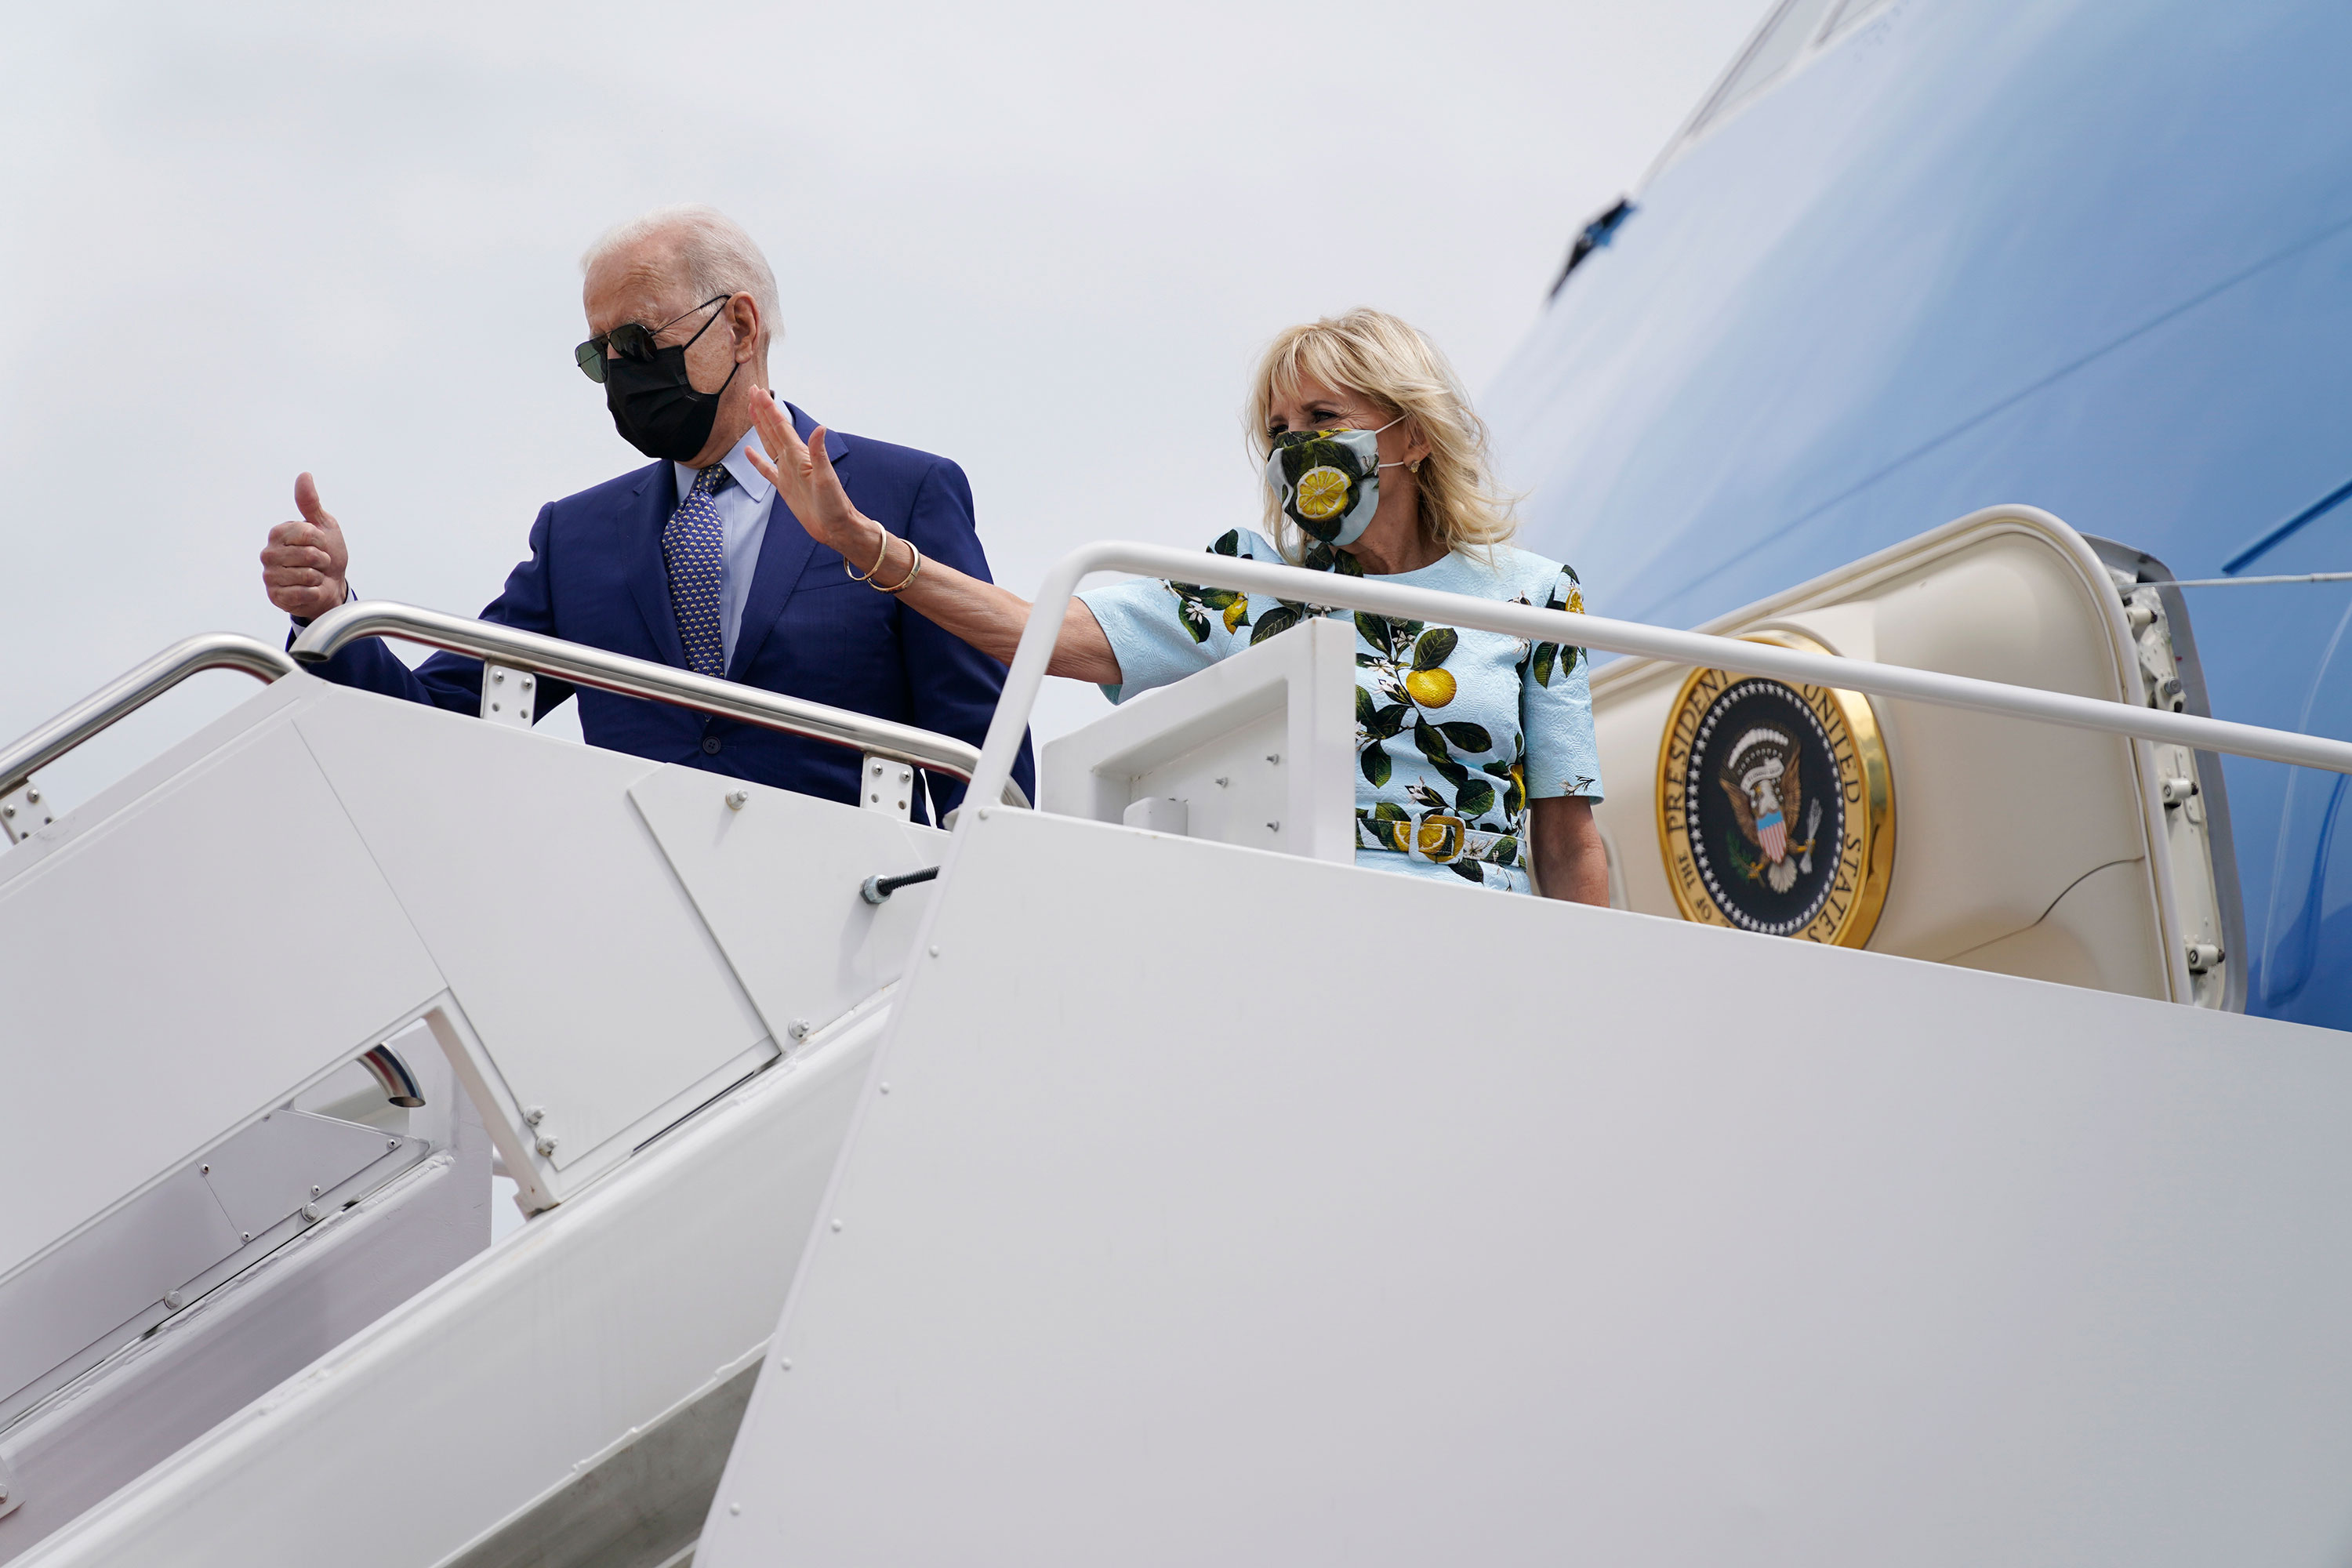 President Joe Biden and first lady Jill Biden board Air Force One for a trip to Georgia on Thursday, April 29, at Andrews Air Force Base, Maryland.